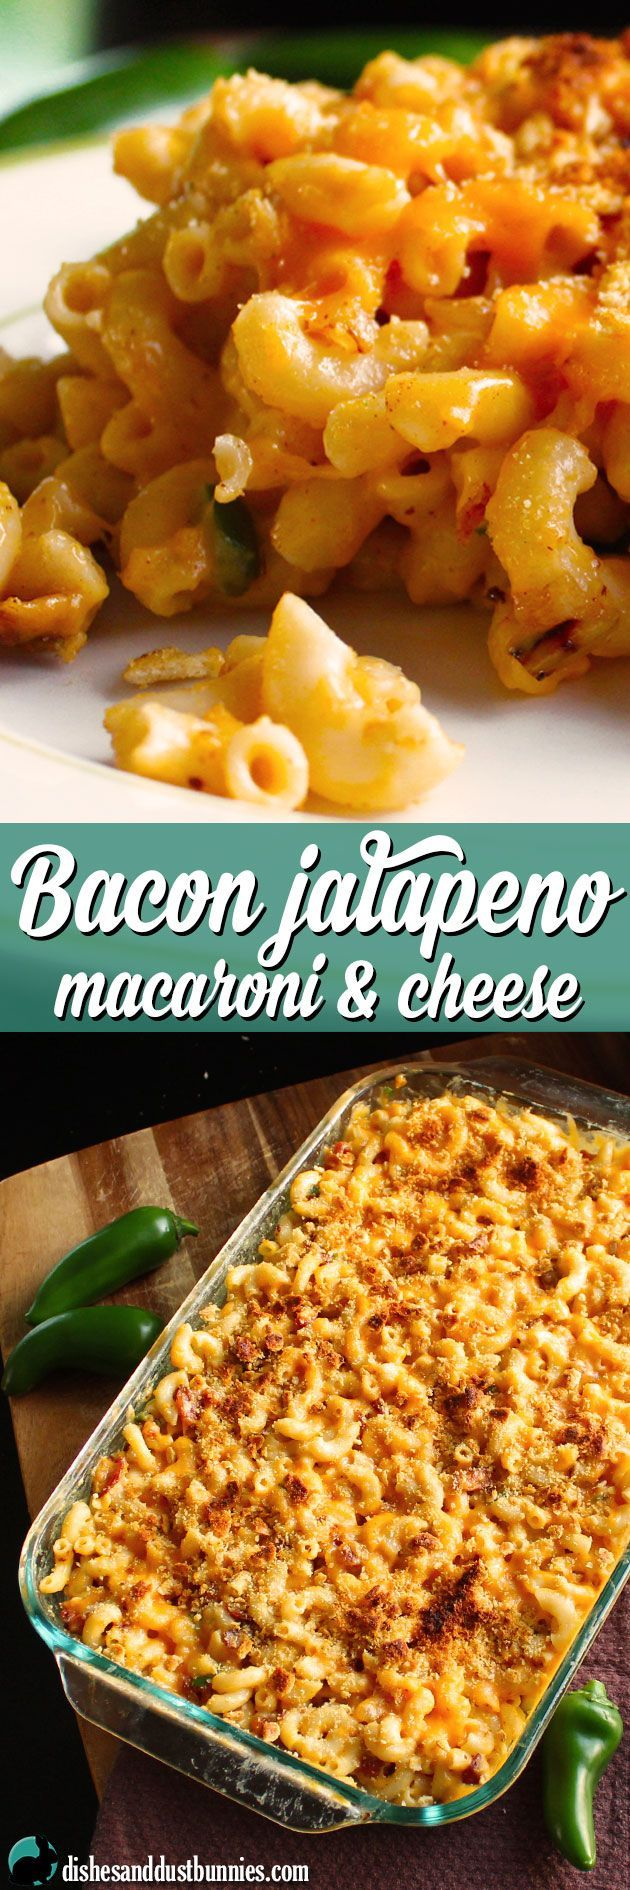 Bacon Jalapeno Macaroni and Cheese from dishesanddustbunnies.com